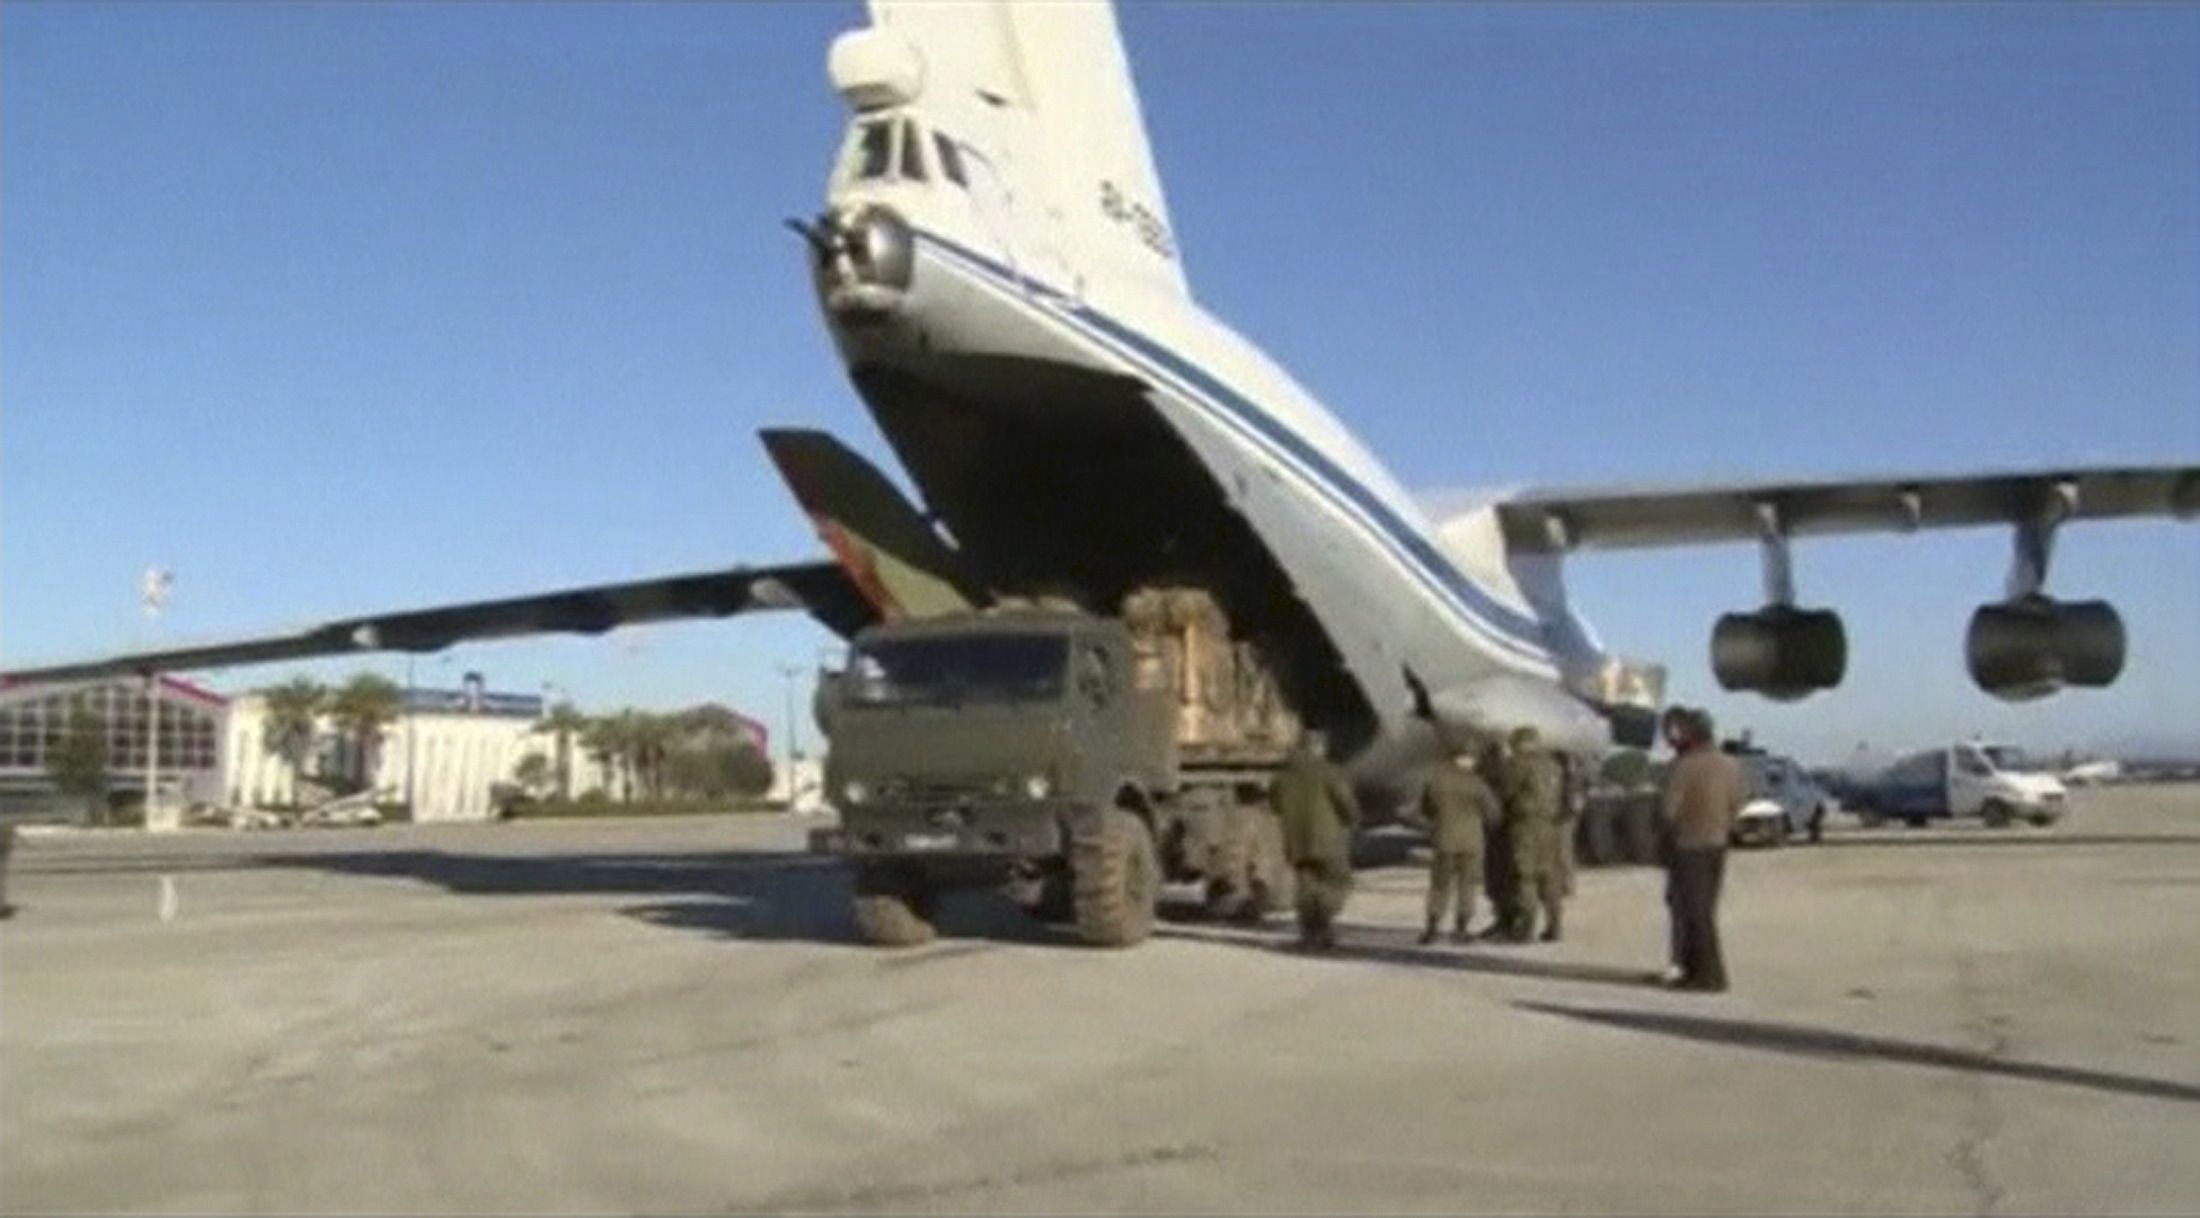 Russian cargo plane is being loaded at an airstrip